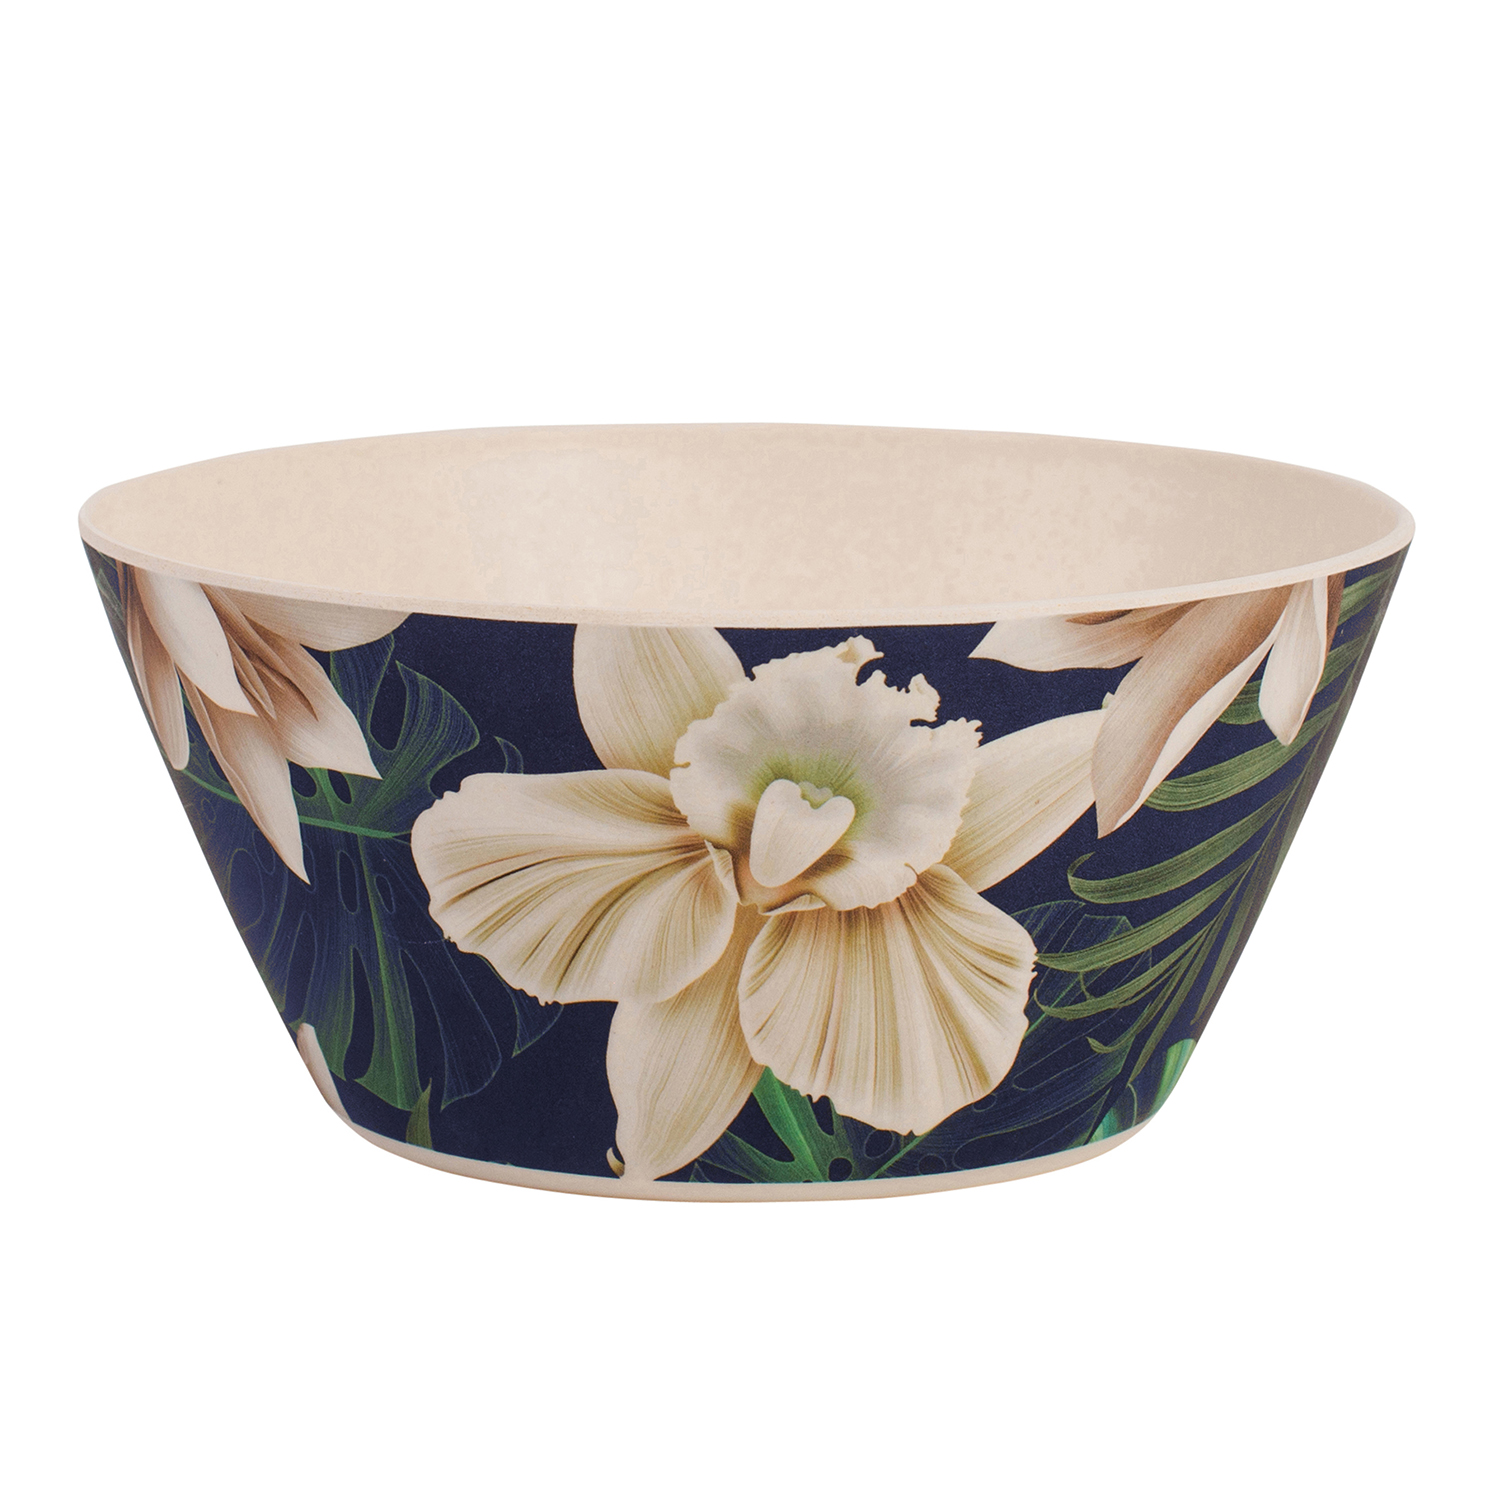 Navigate – Summerhouse 'Java' Bamboo Decorated Bowl